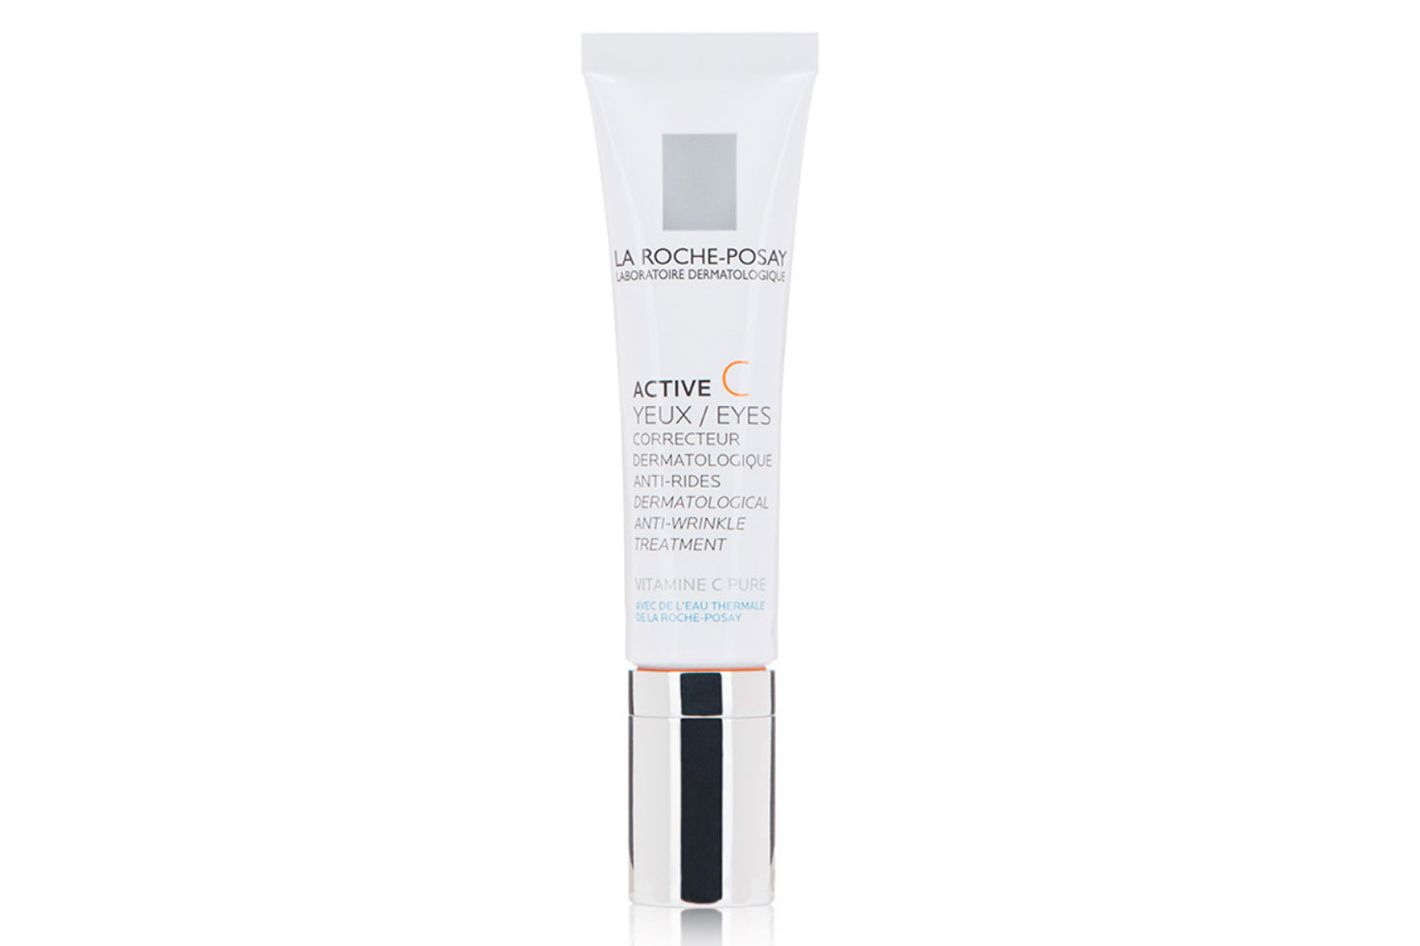 La Roche-Posay Active C Eyes